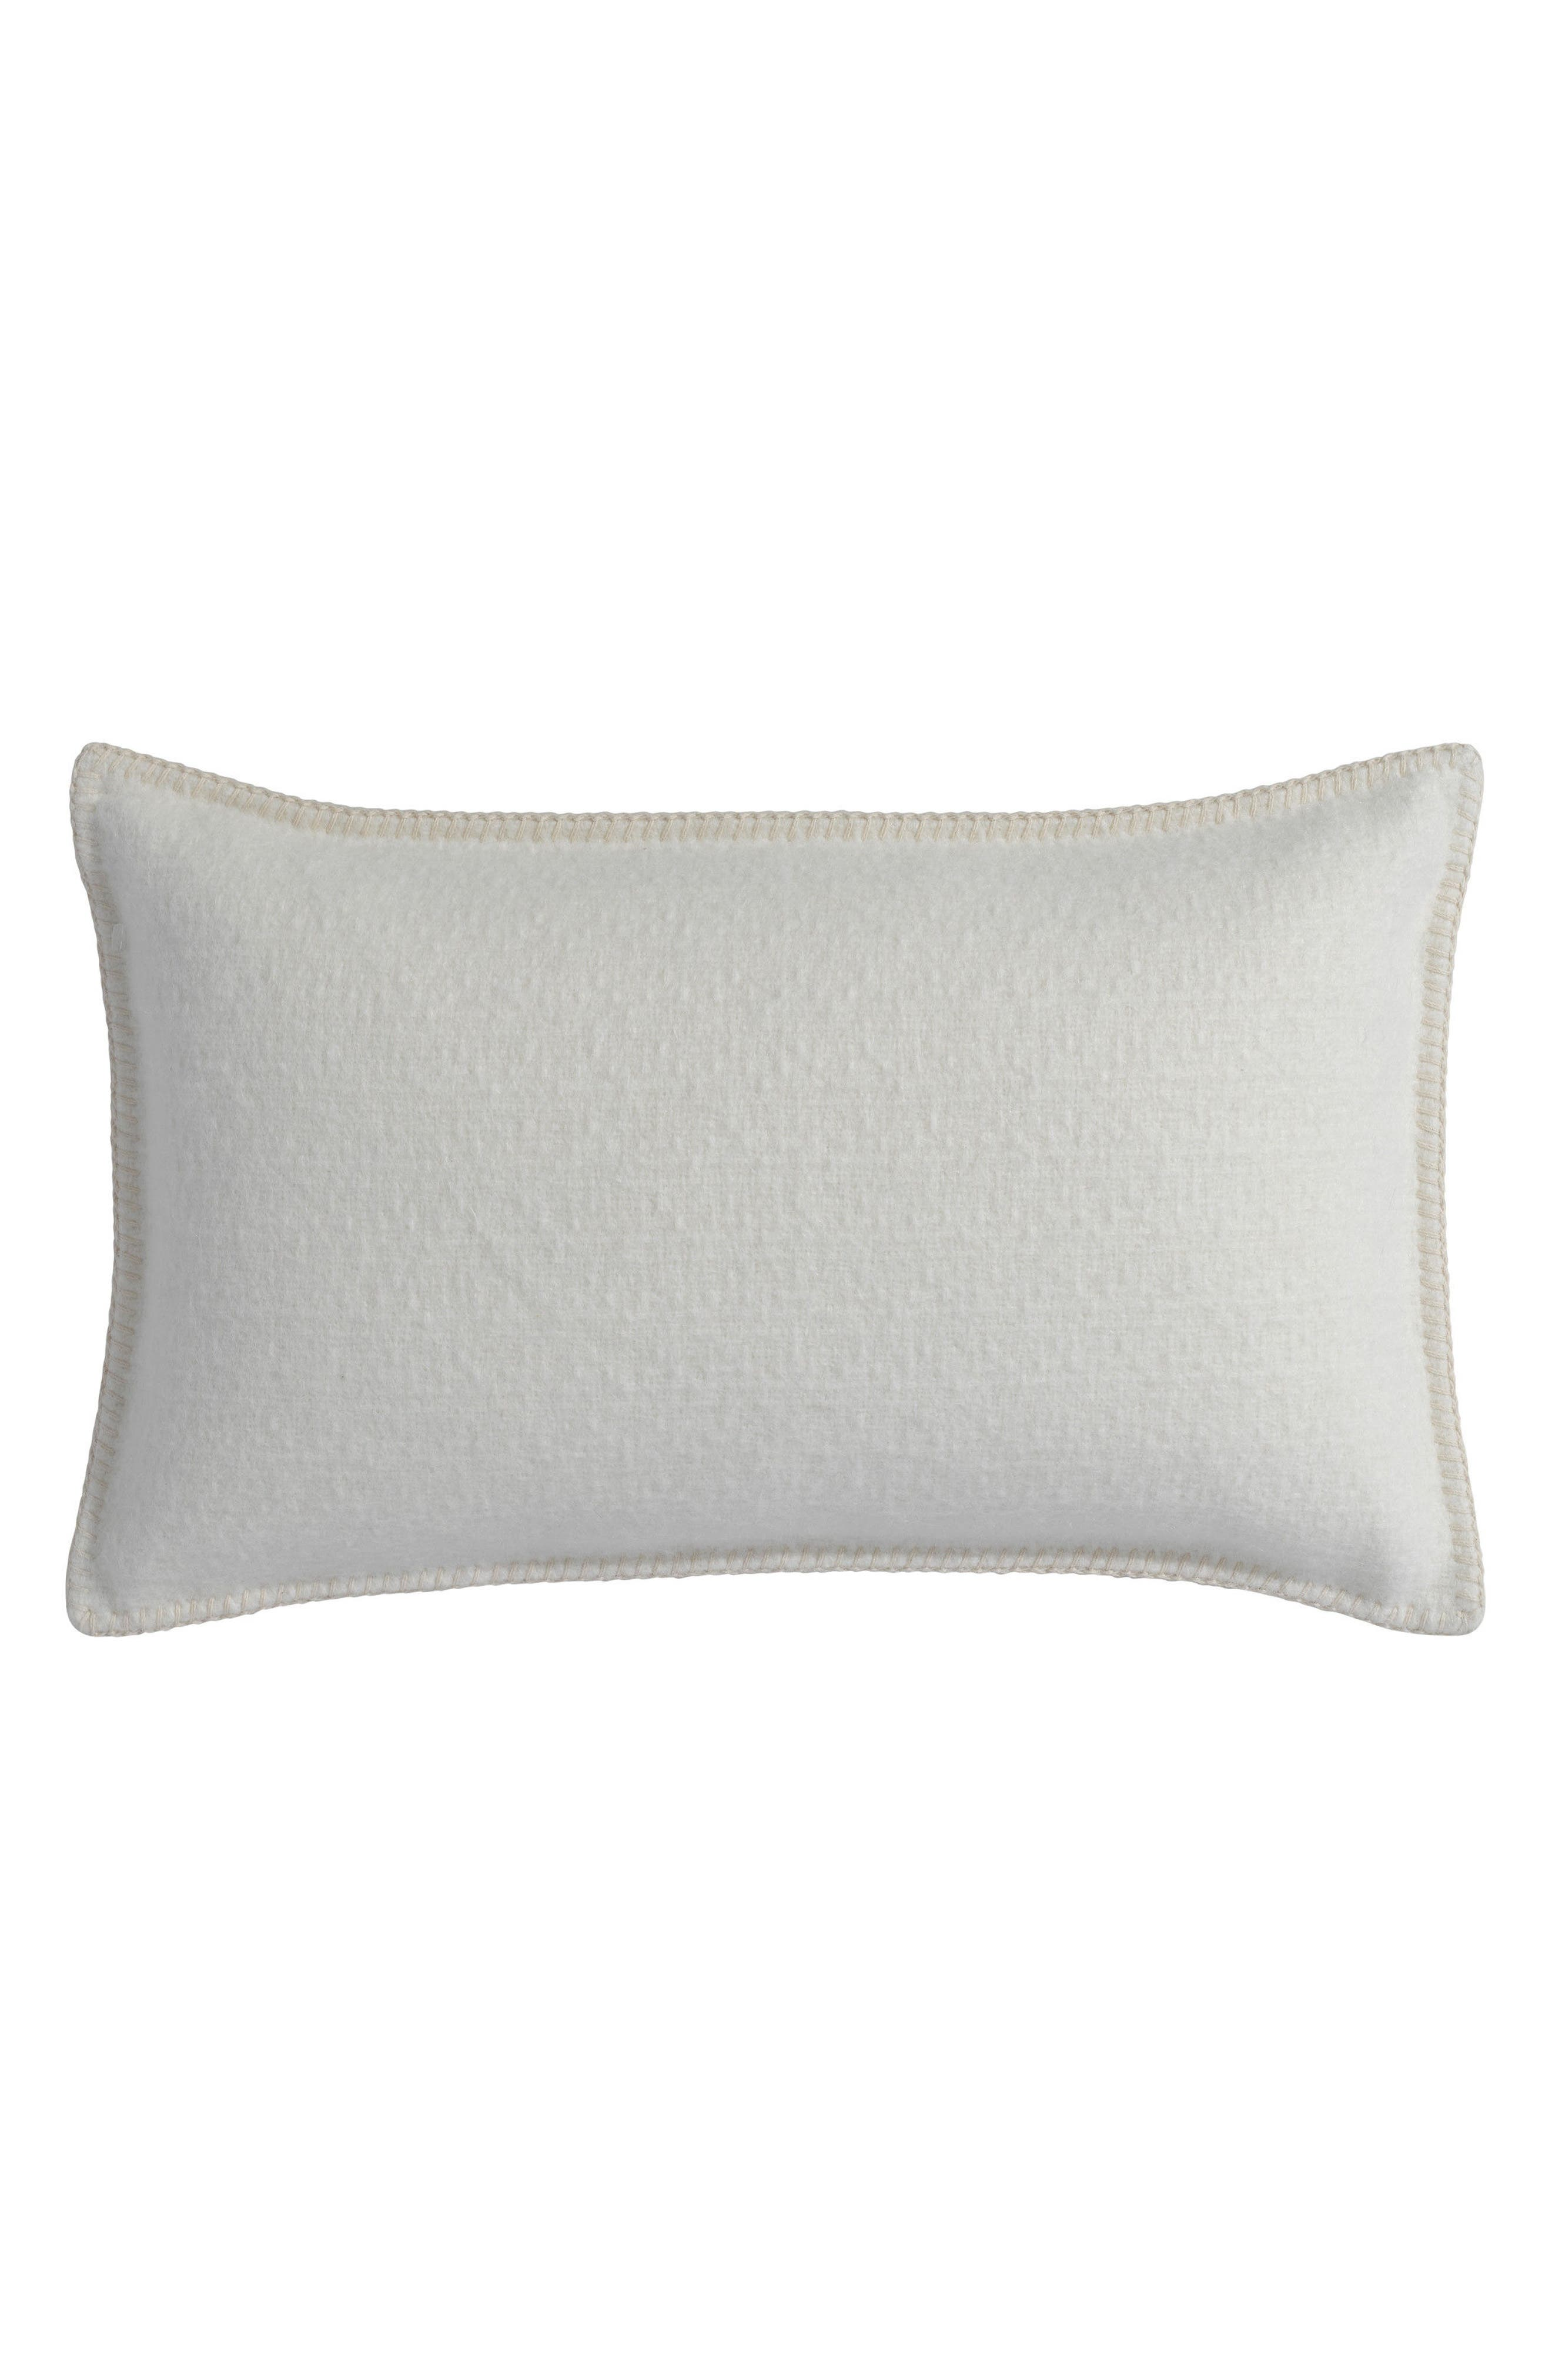 Alternate Image 1 Selected - Portico Basketweave Alpaca Accent Pillow